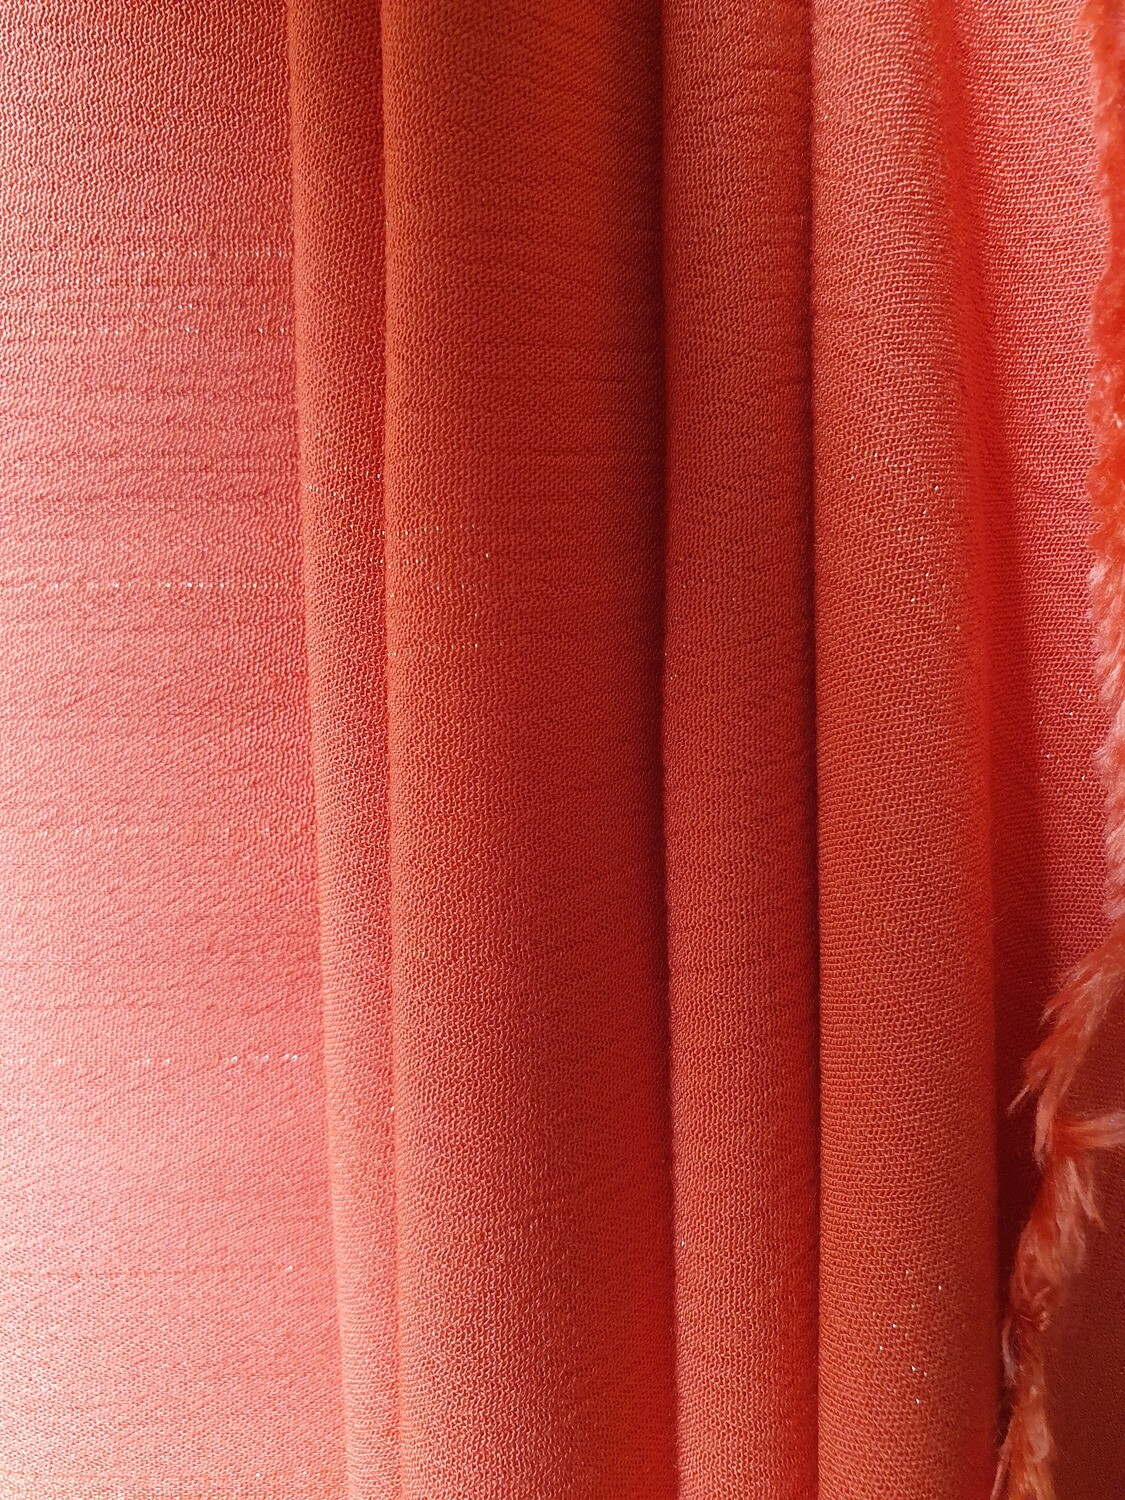 Viscose Crinkle - Orange/Gold